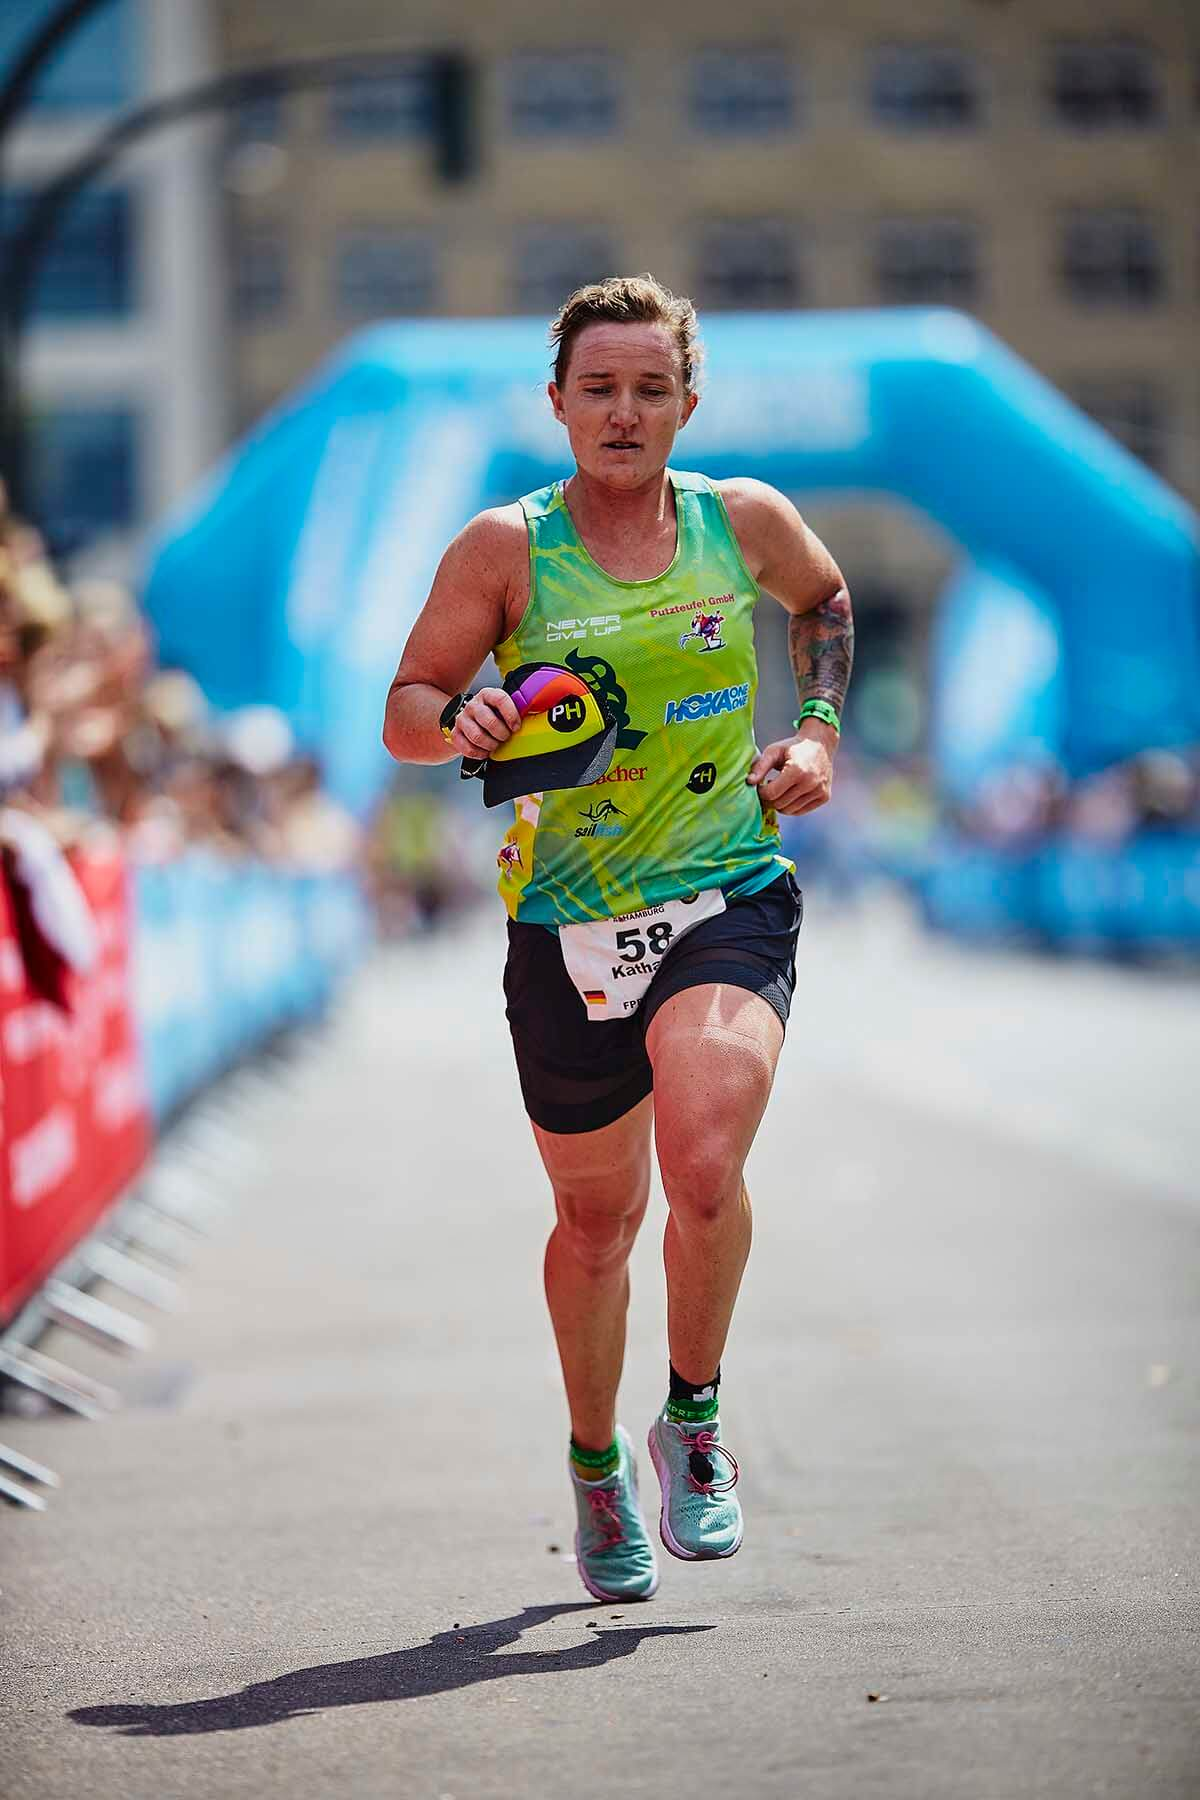 HOKA athlete Katharina Grohmann runs in Ironman Hamburg